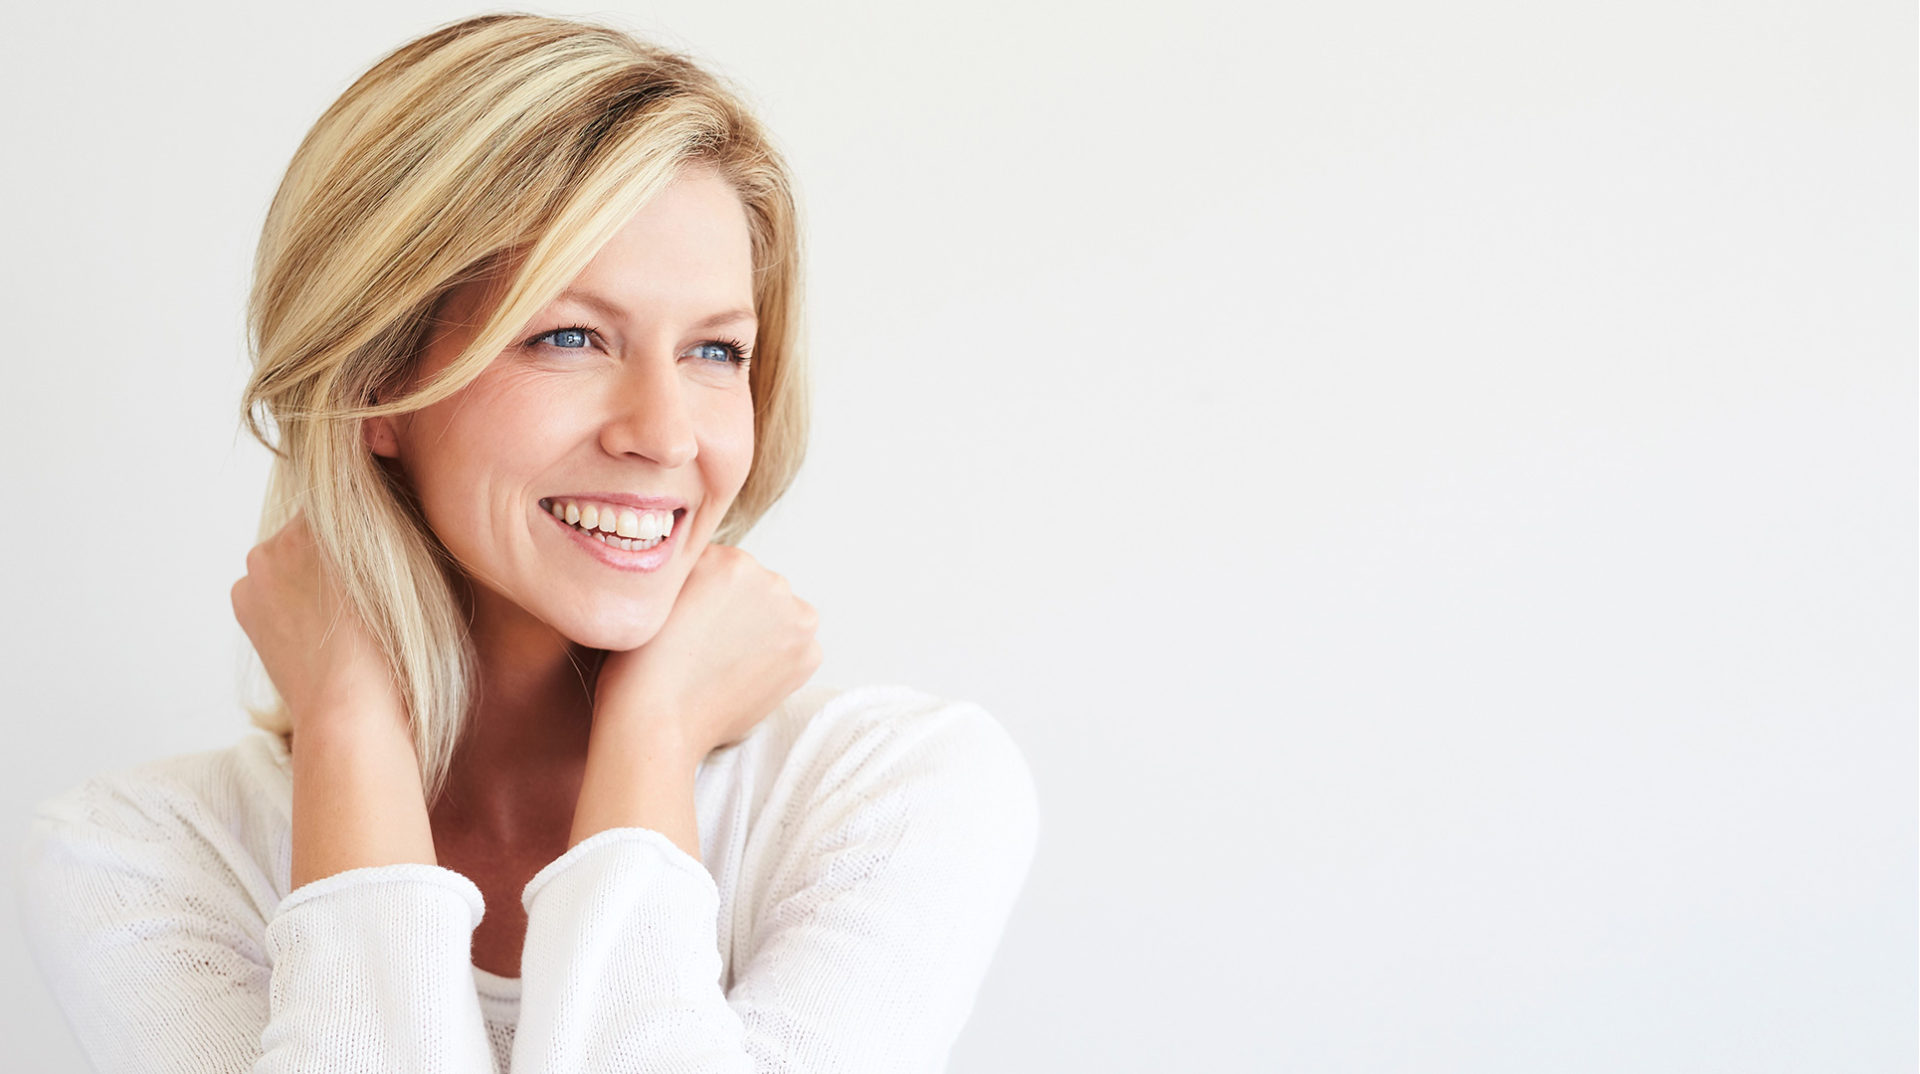 cosmetic treatments for women in their 40s